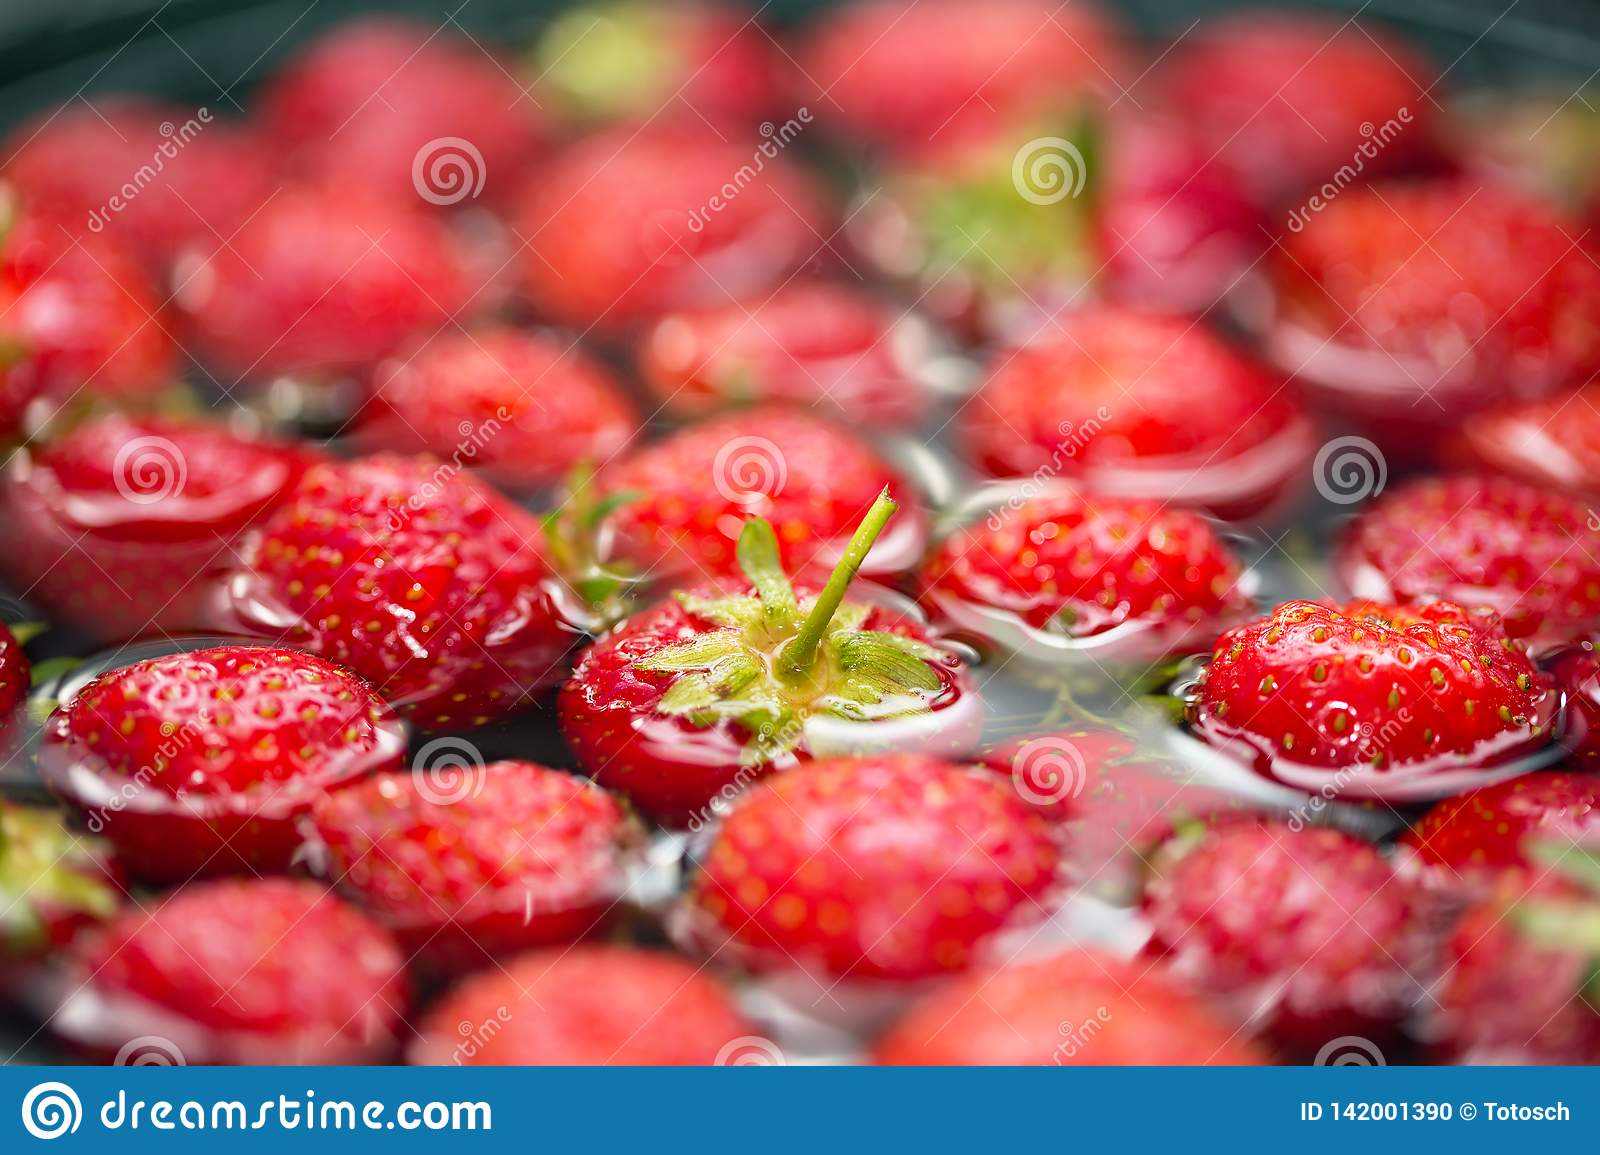 Close-up view of strawberries in water